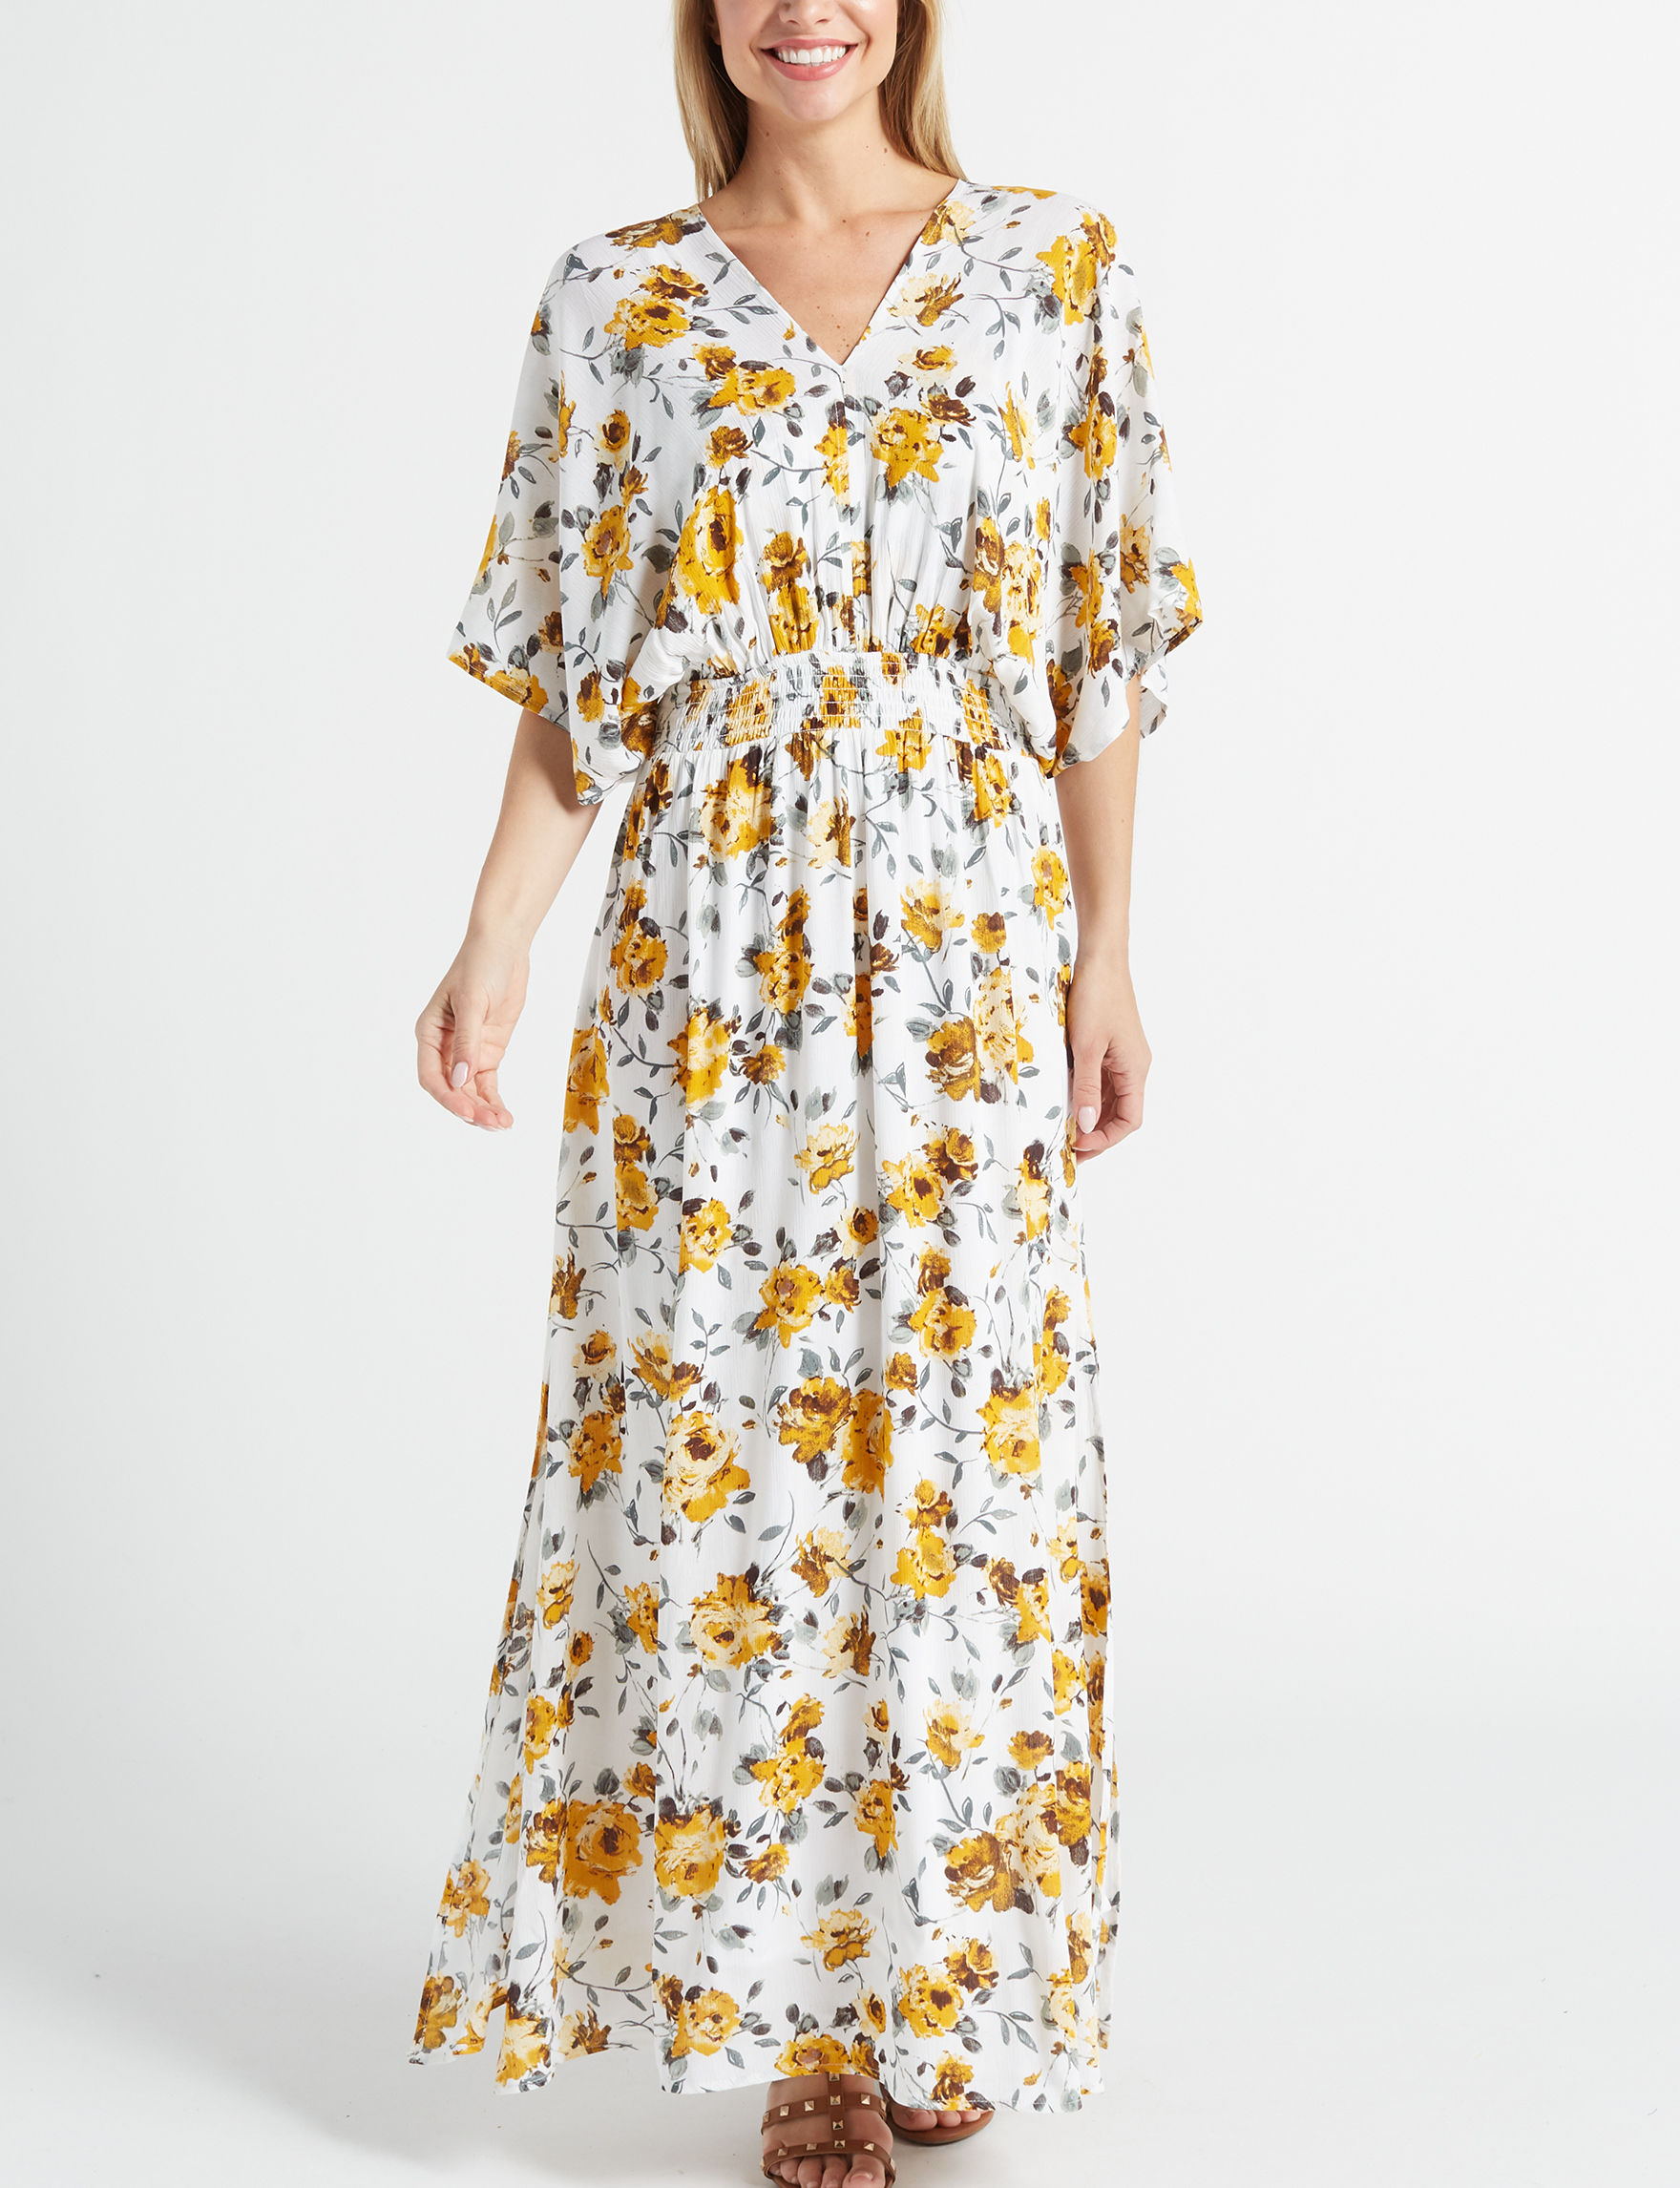 Nina Leonard Mustard Floral Everyday & Casual Fit & Flare Dresses